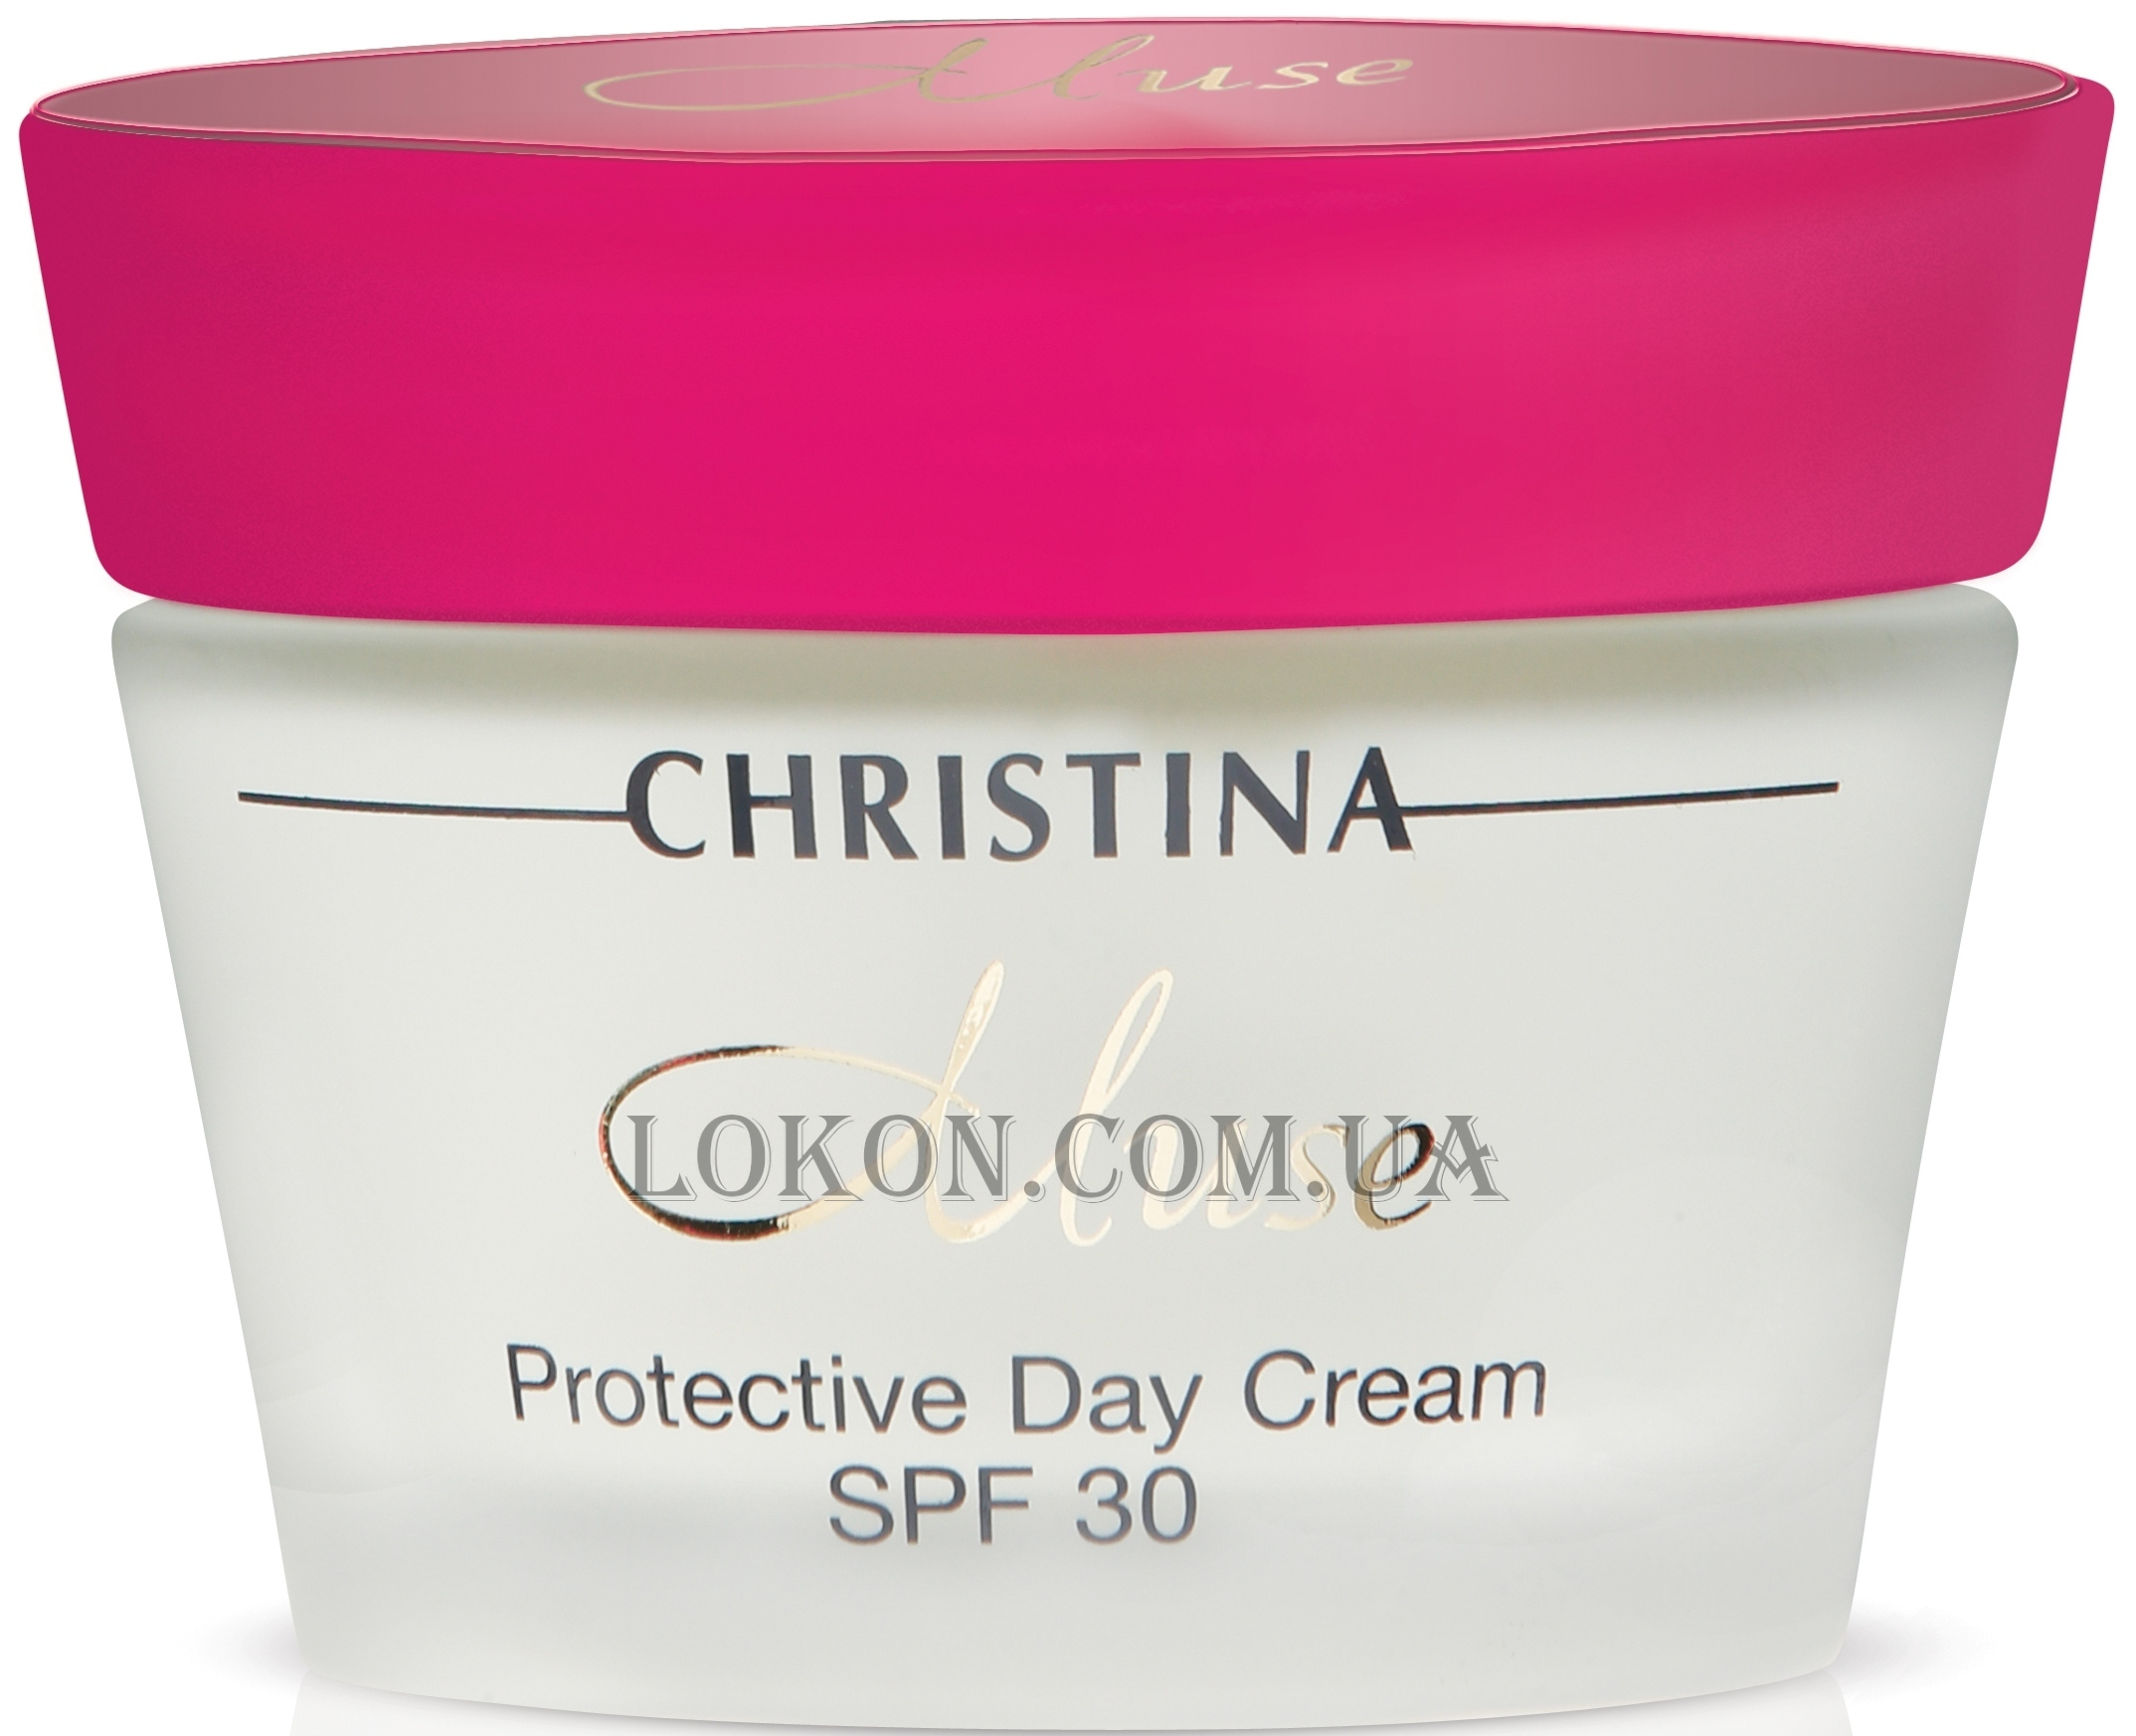 CHRISTINA Muse Protective Day Cream SPF-30 - Защитный дневной крем SPF-30